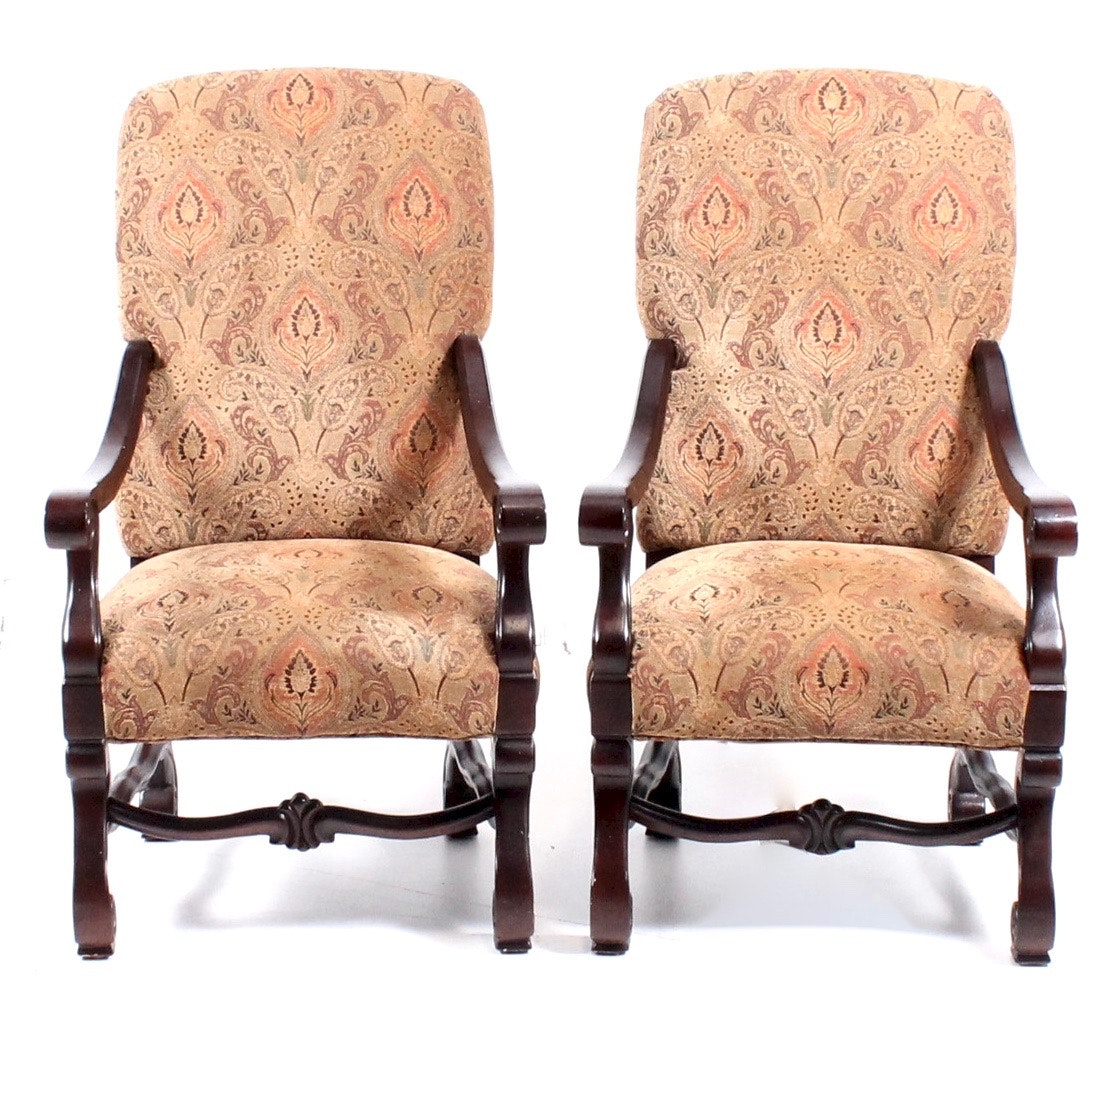 Pair of Rococo Revival Style Armchairs